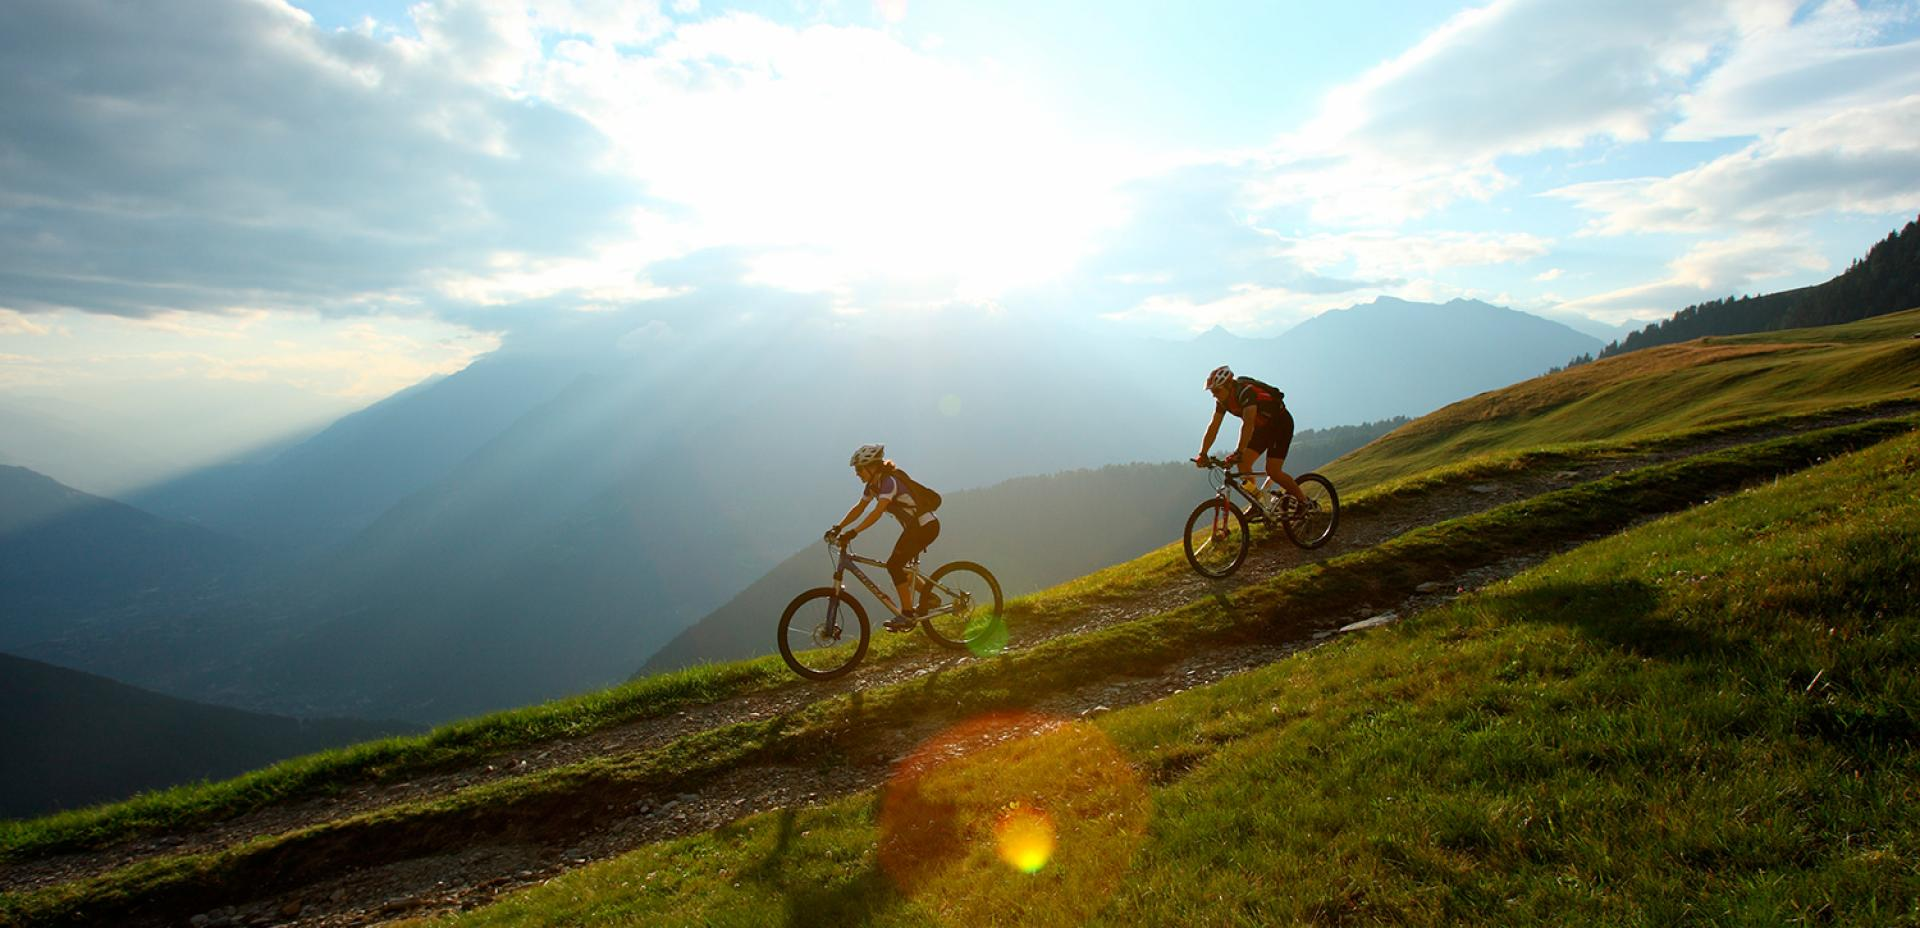 Con la mountainbike in Alto Adige